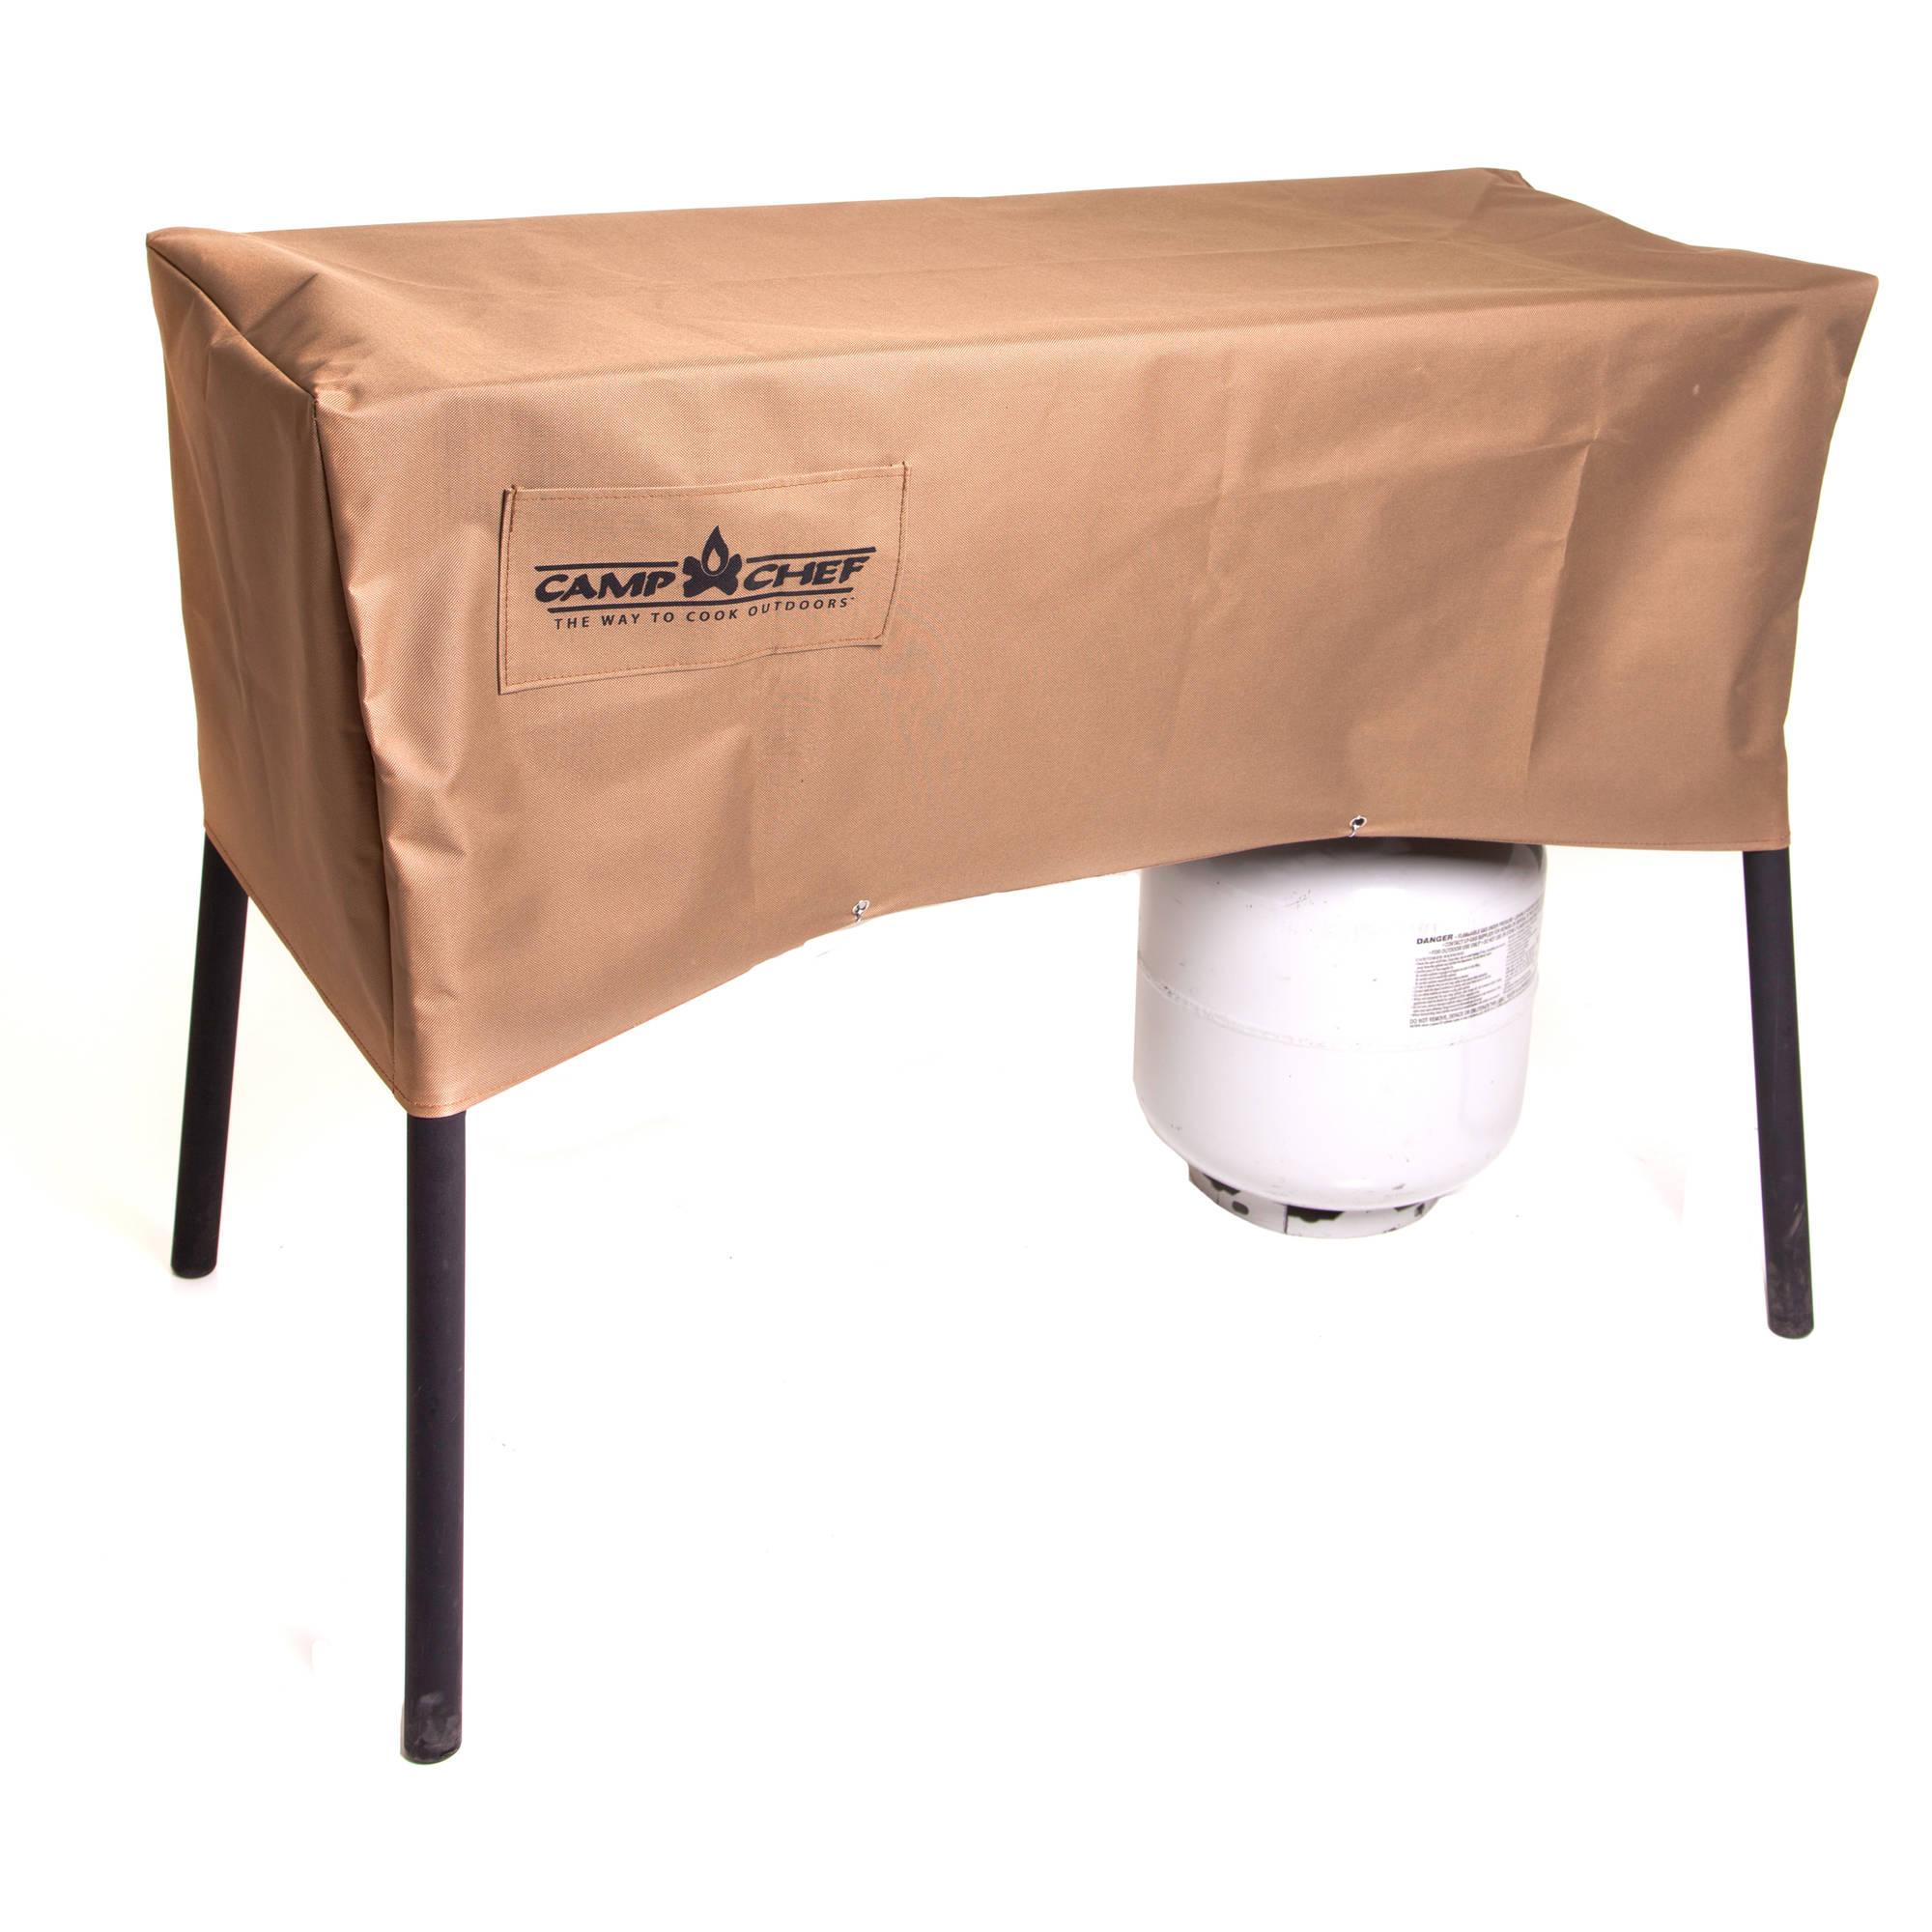 3X Triple Action Burner camp chef patio cover for tb90 and spg90 triple burner stove - walmart